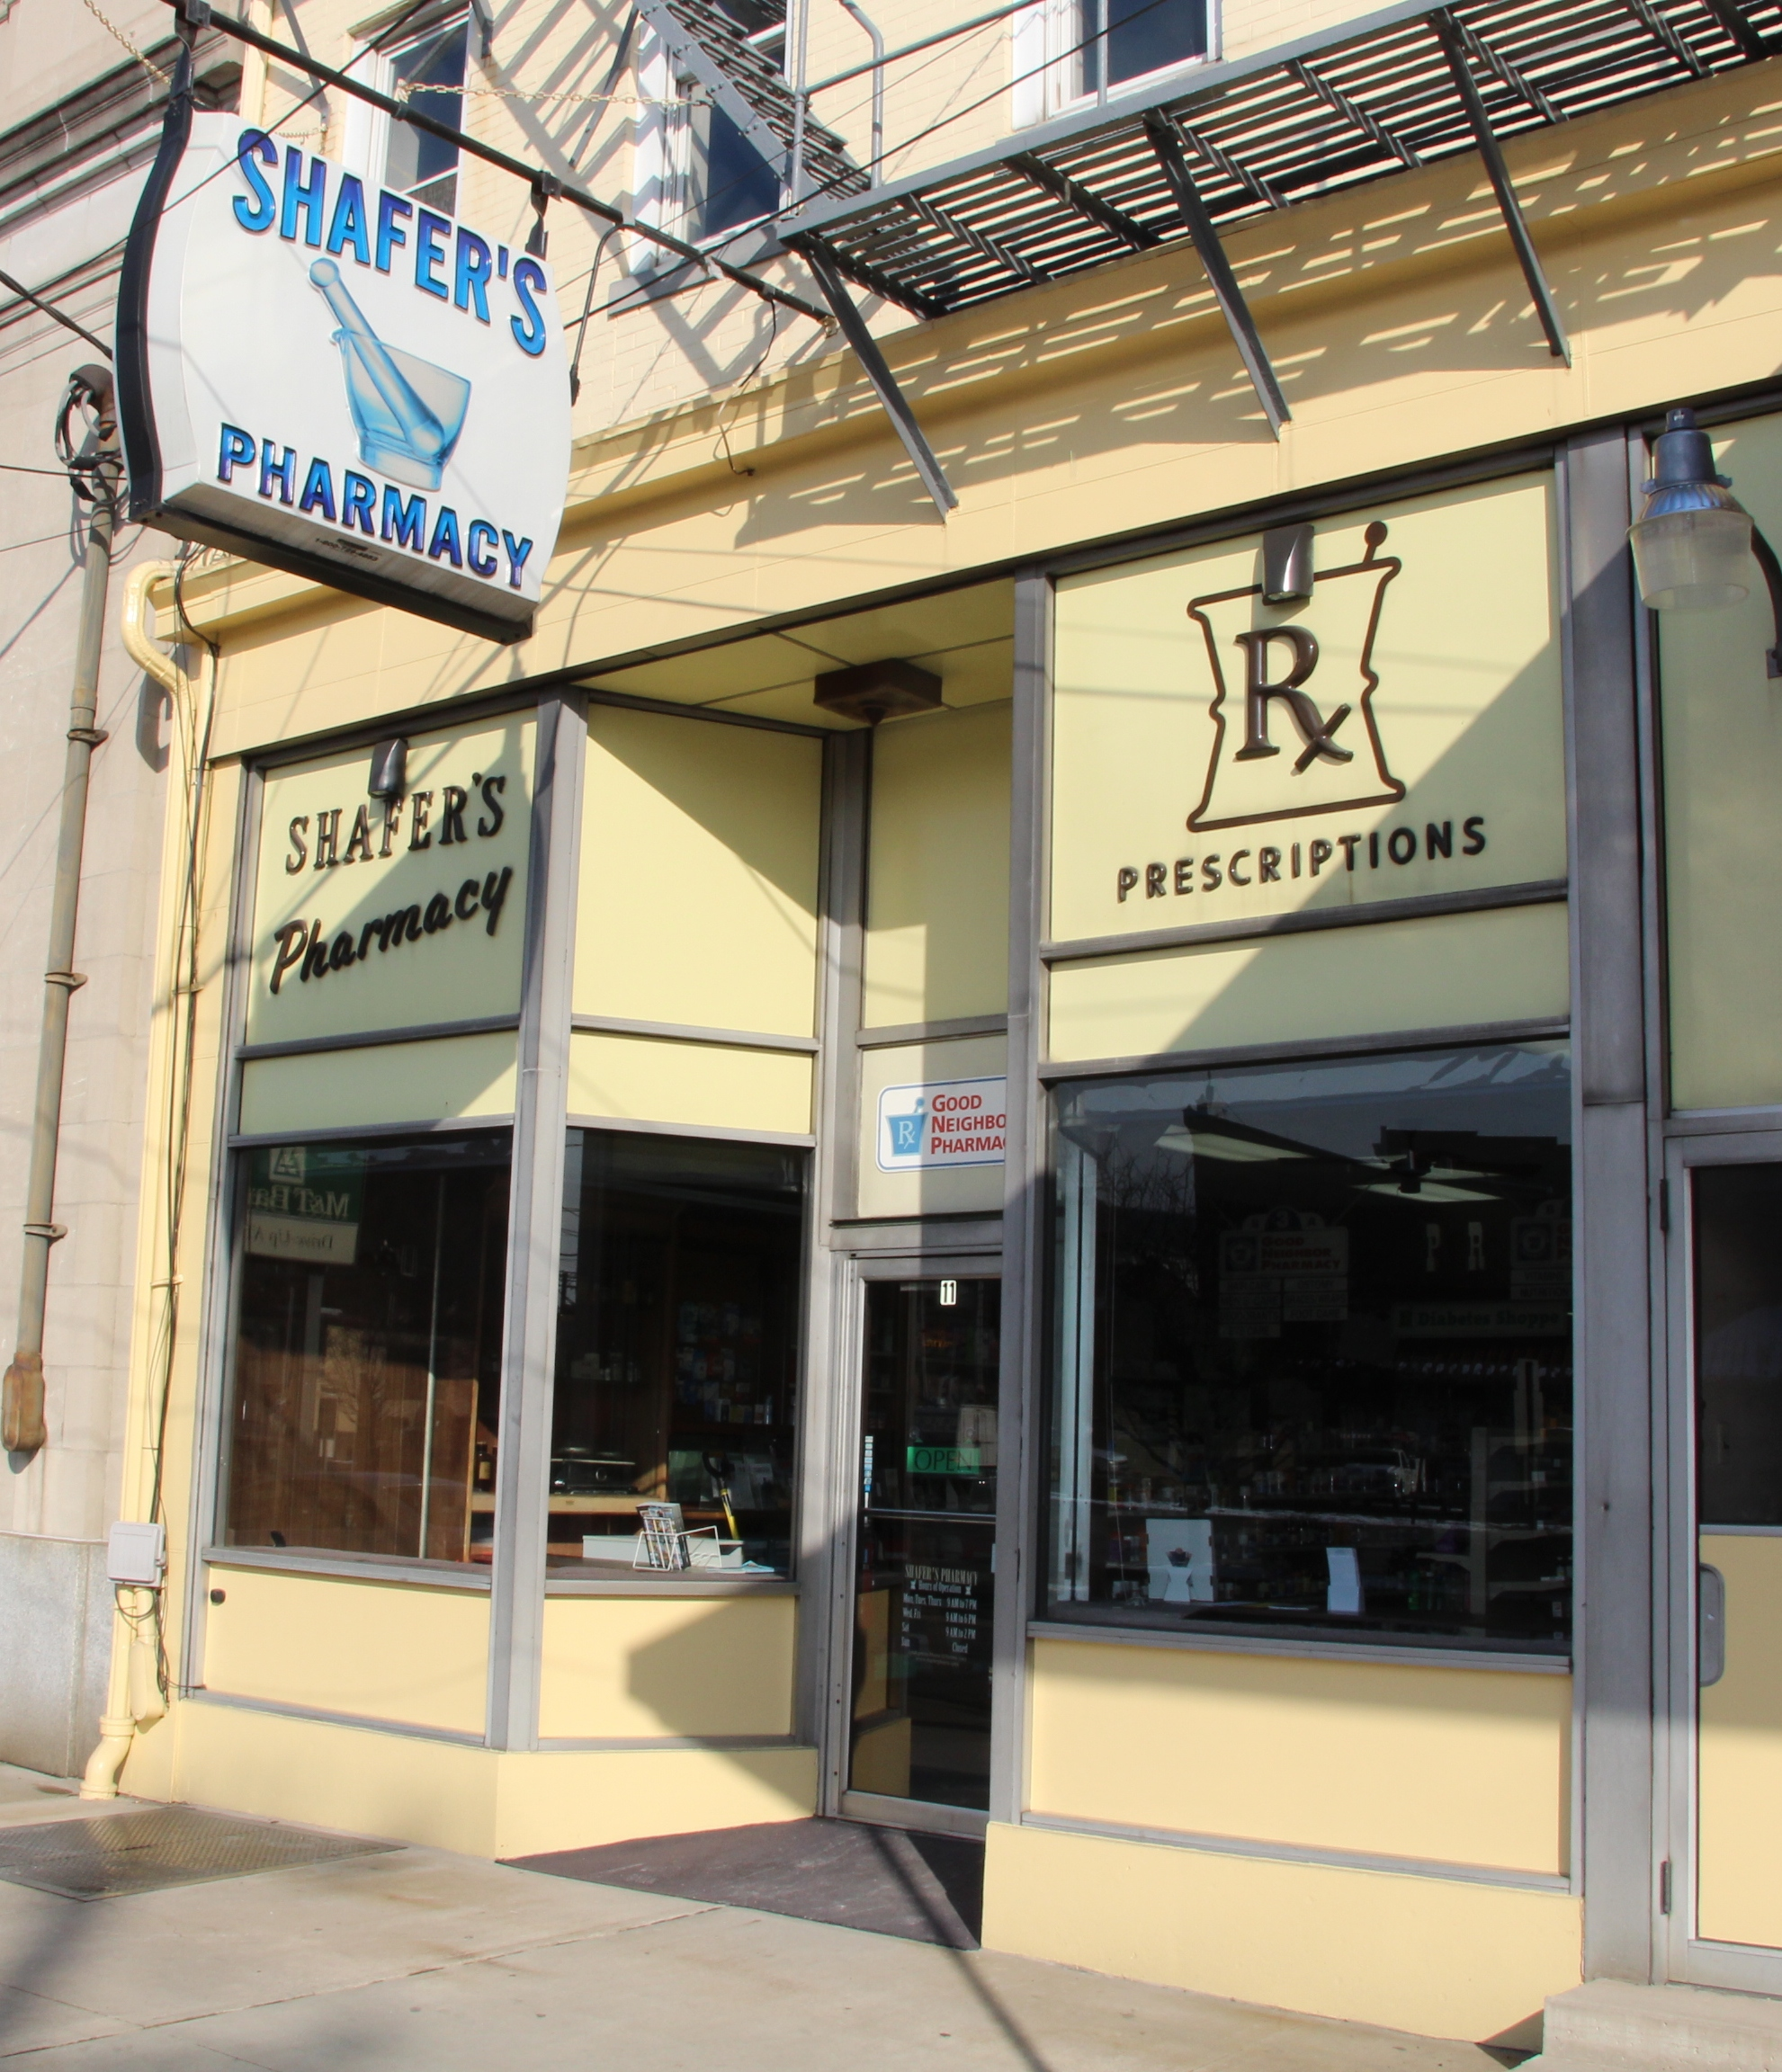 BUSINESS OF THE DAY: Shafer's Pharmacy